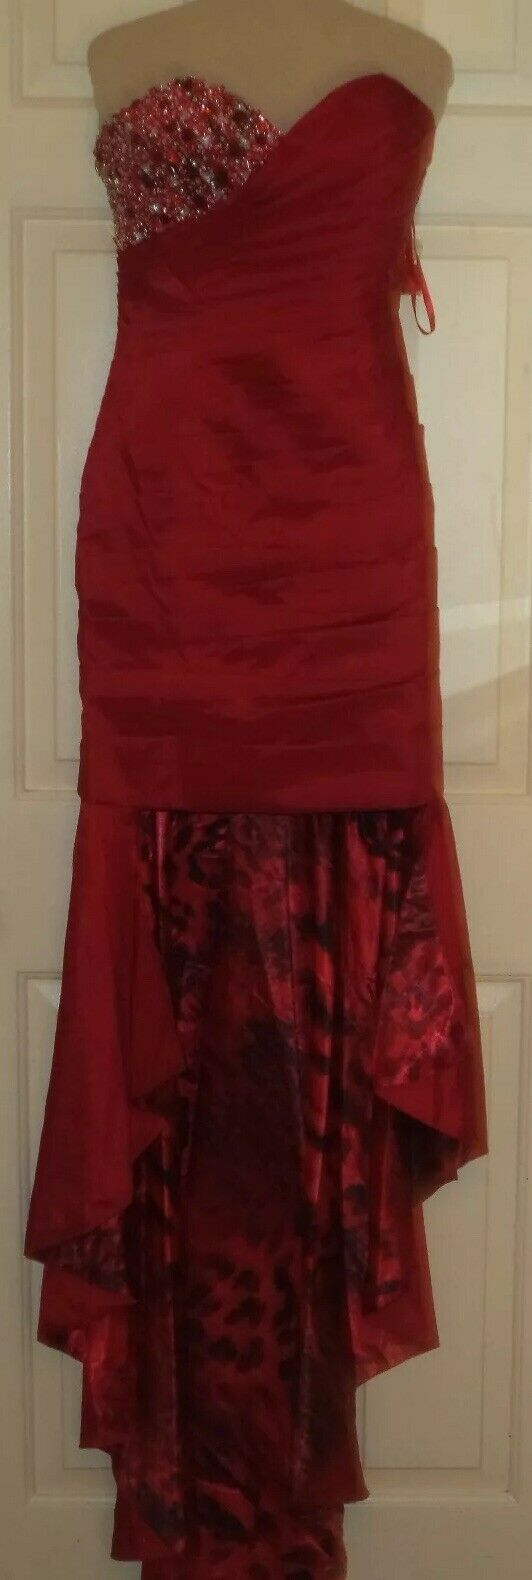 High-Low Women's Dresses NEW WITHOUT WITHOUT WITHOUT TAGS 86511a